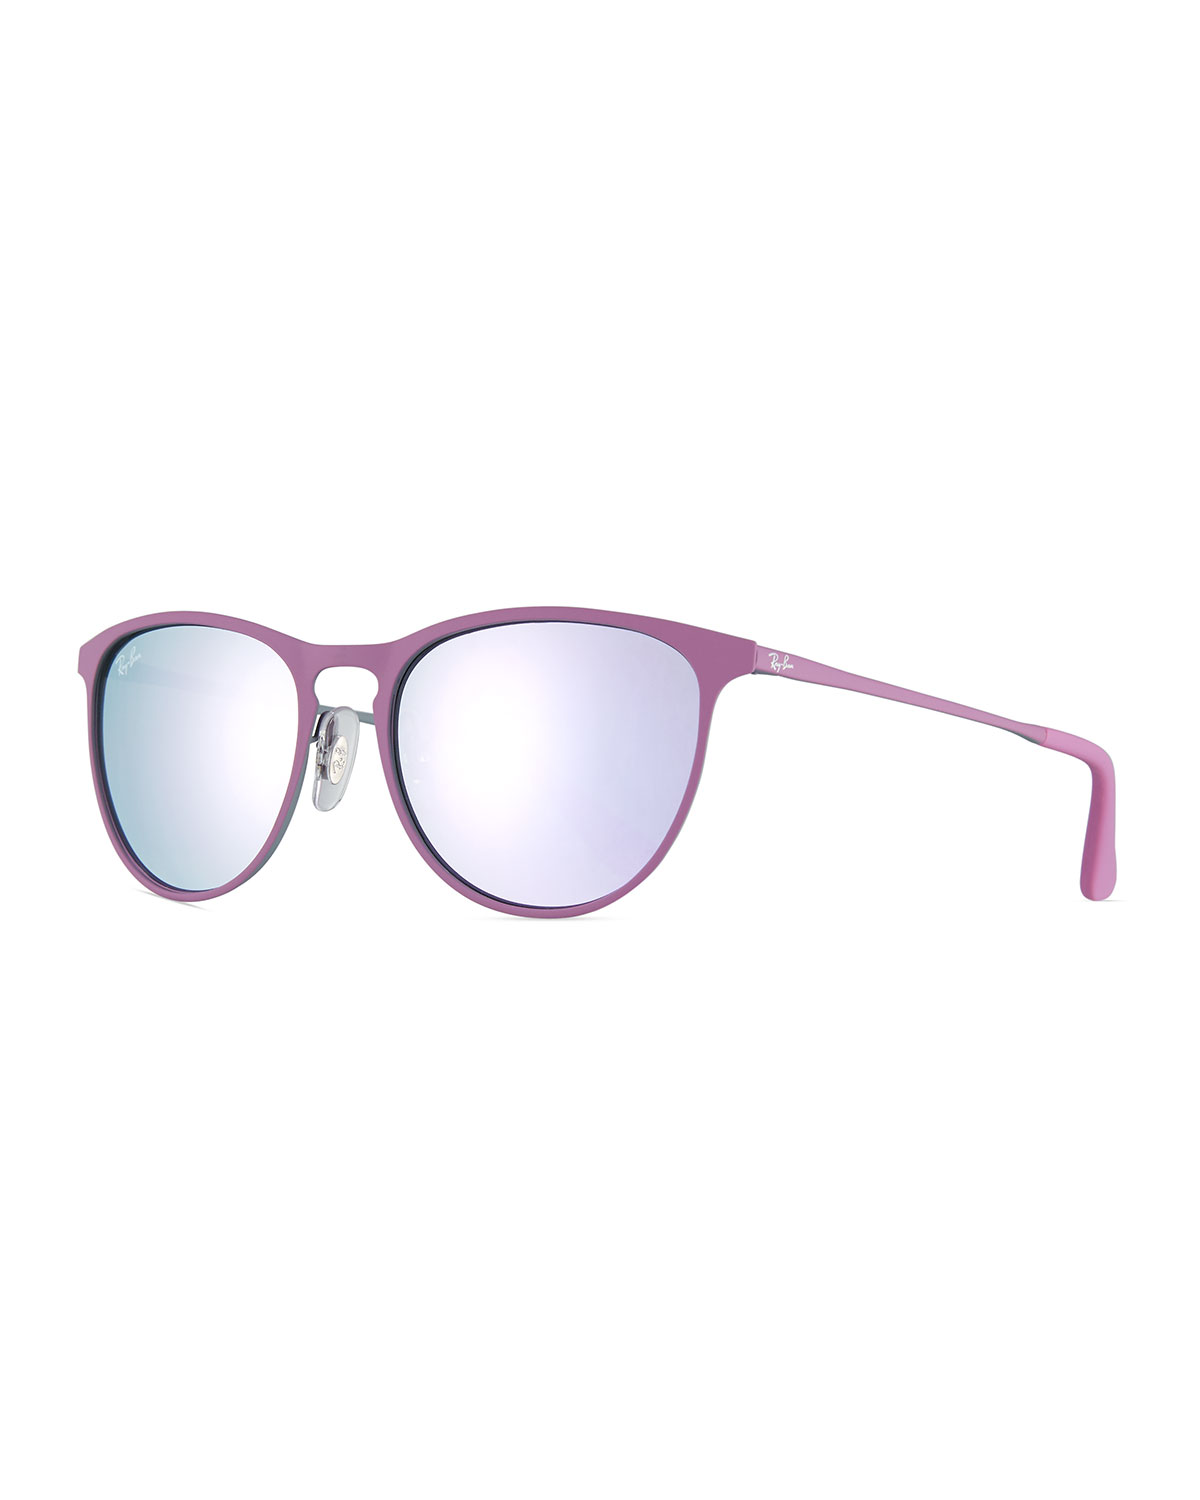 88d0f18296 Ray-Ban Junior Erika Mirrored Rounded Square Sunglasses